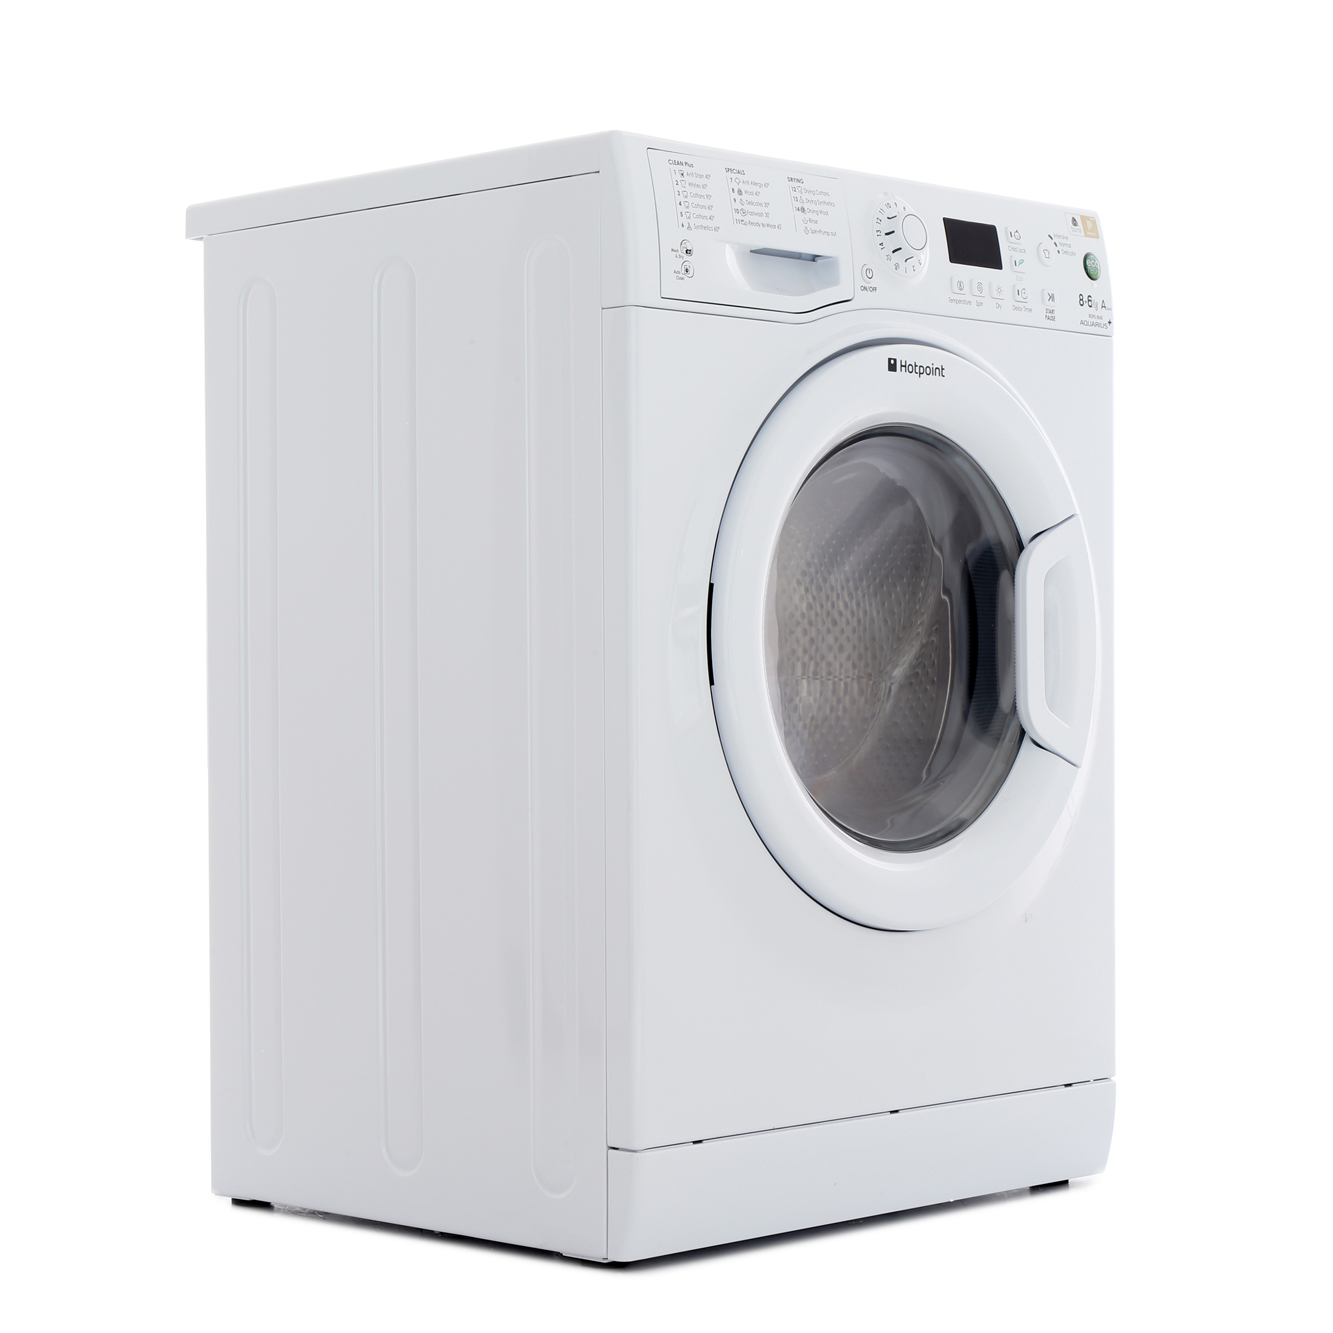 Hotpoint Washer Dryer Combo Buy Hotpoint Aquarius Wdpg8640p Washer Dryer Wdpg8640p Polar